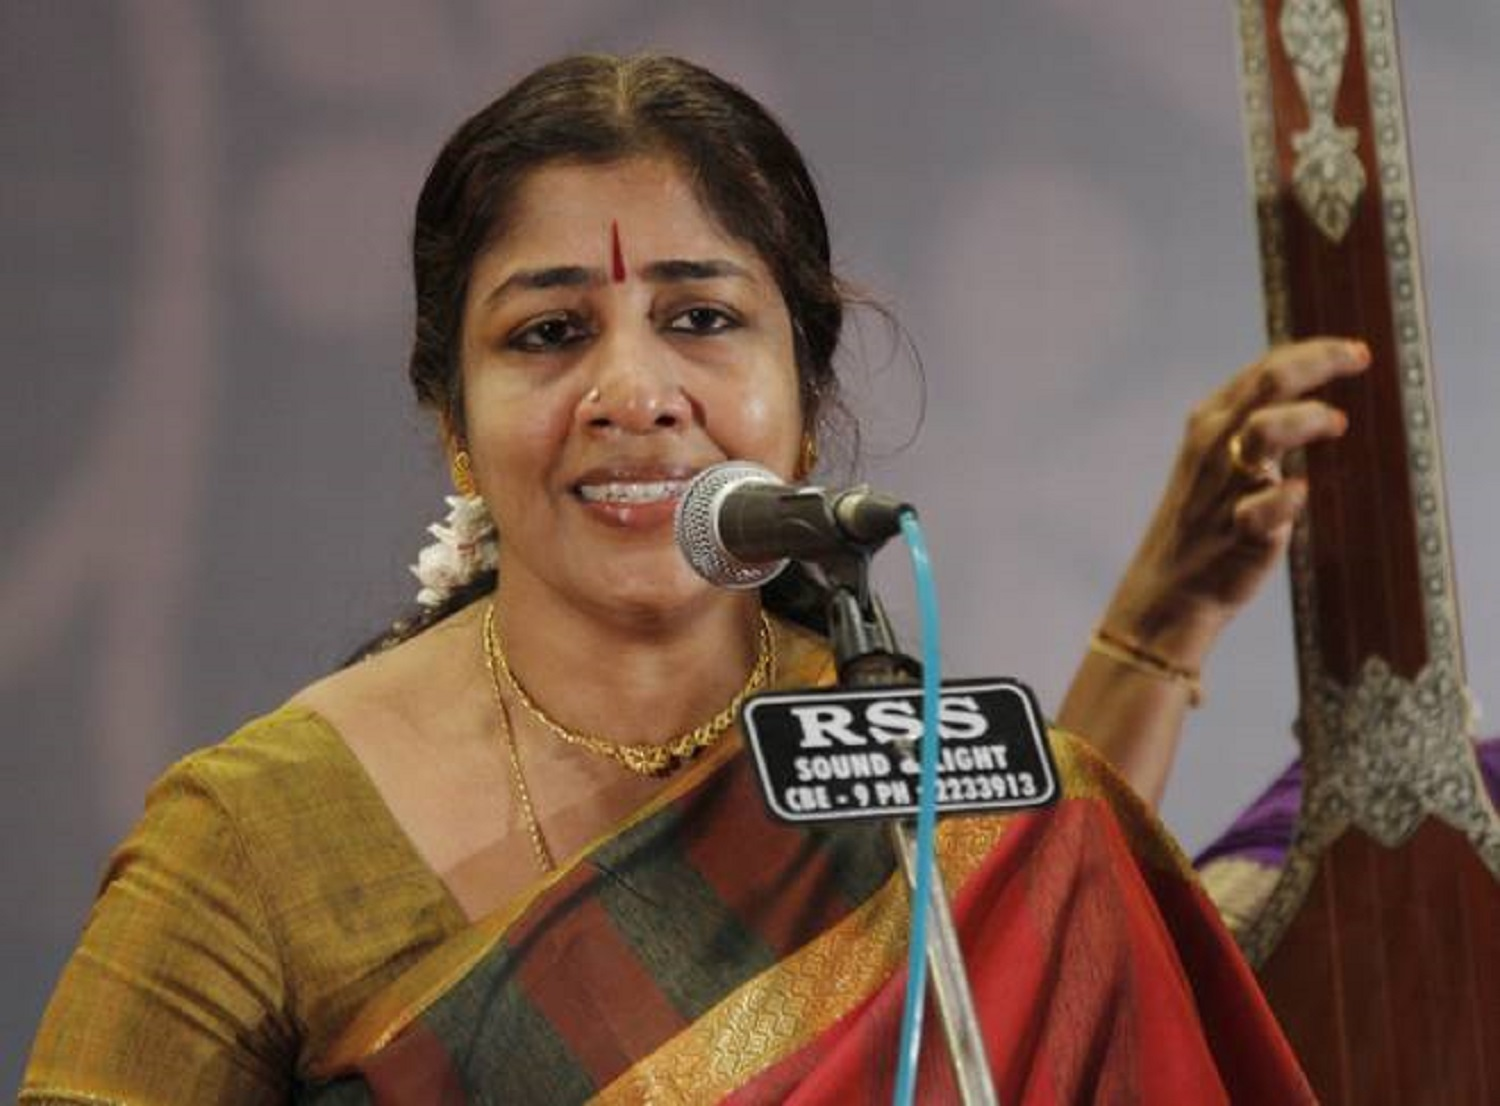 Carnatic Vocal Concert (Free) – (as part of the Philadelphia Ganesh Festival activities)